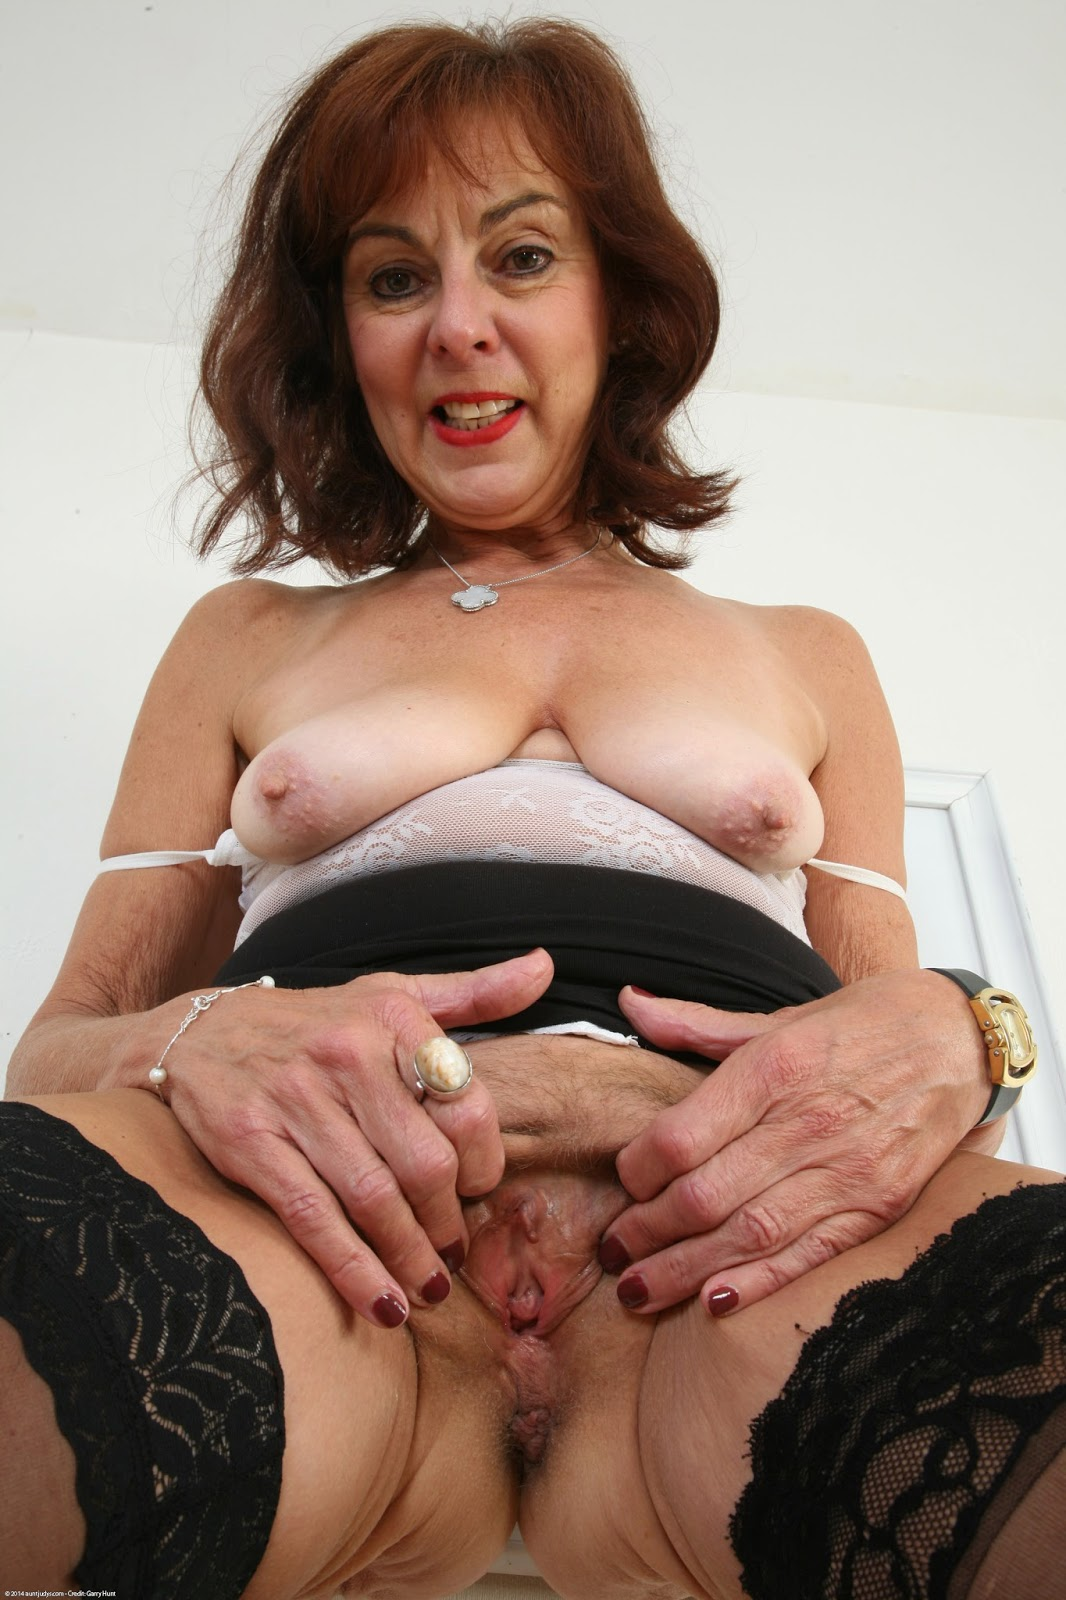 82 year old grandma libby takes young black cock - 2 part 1